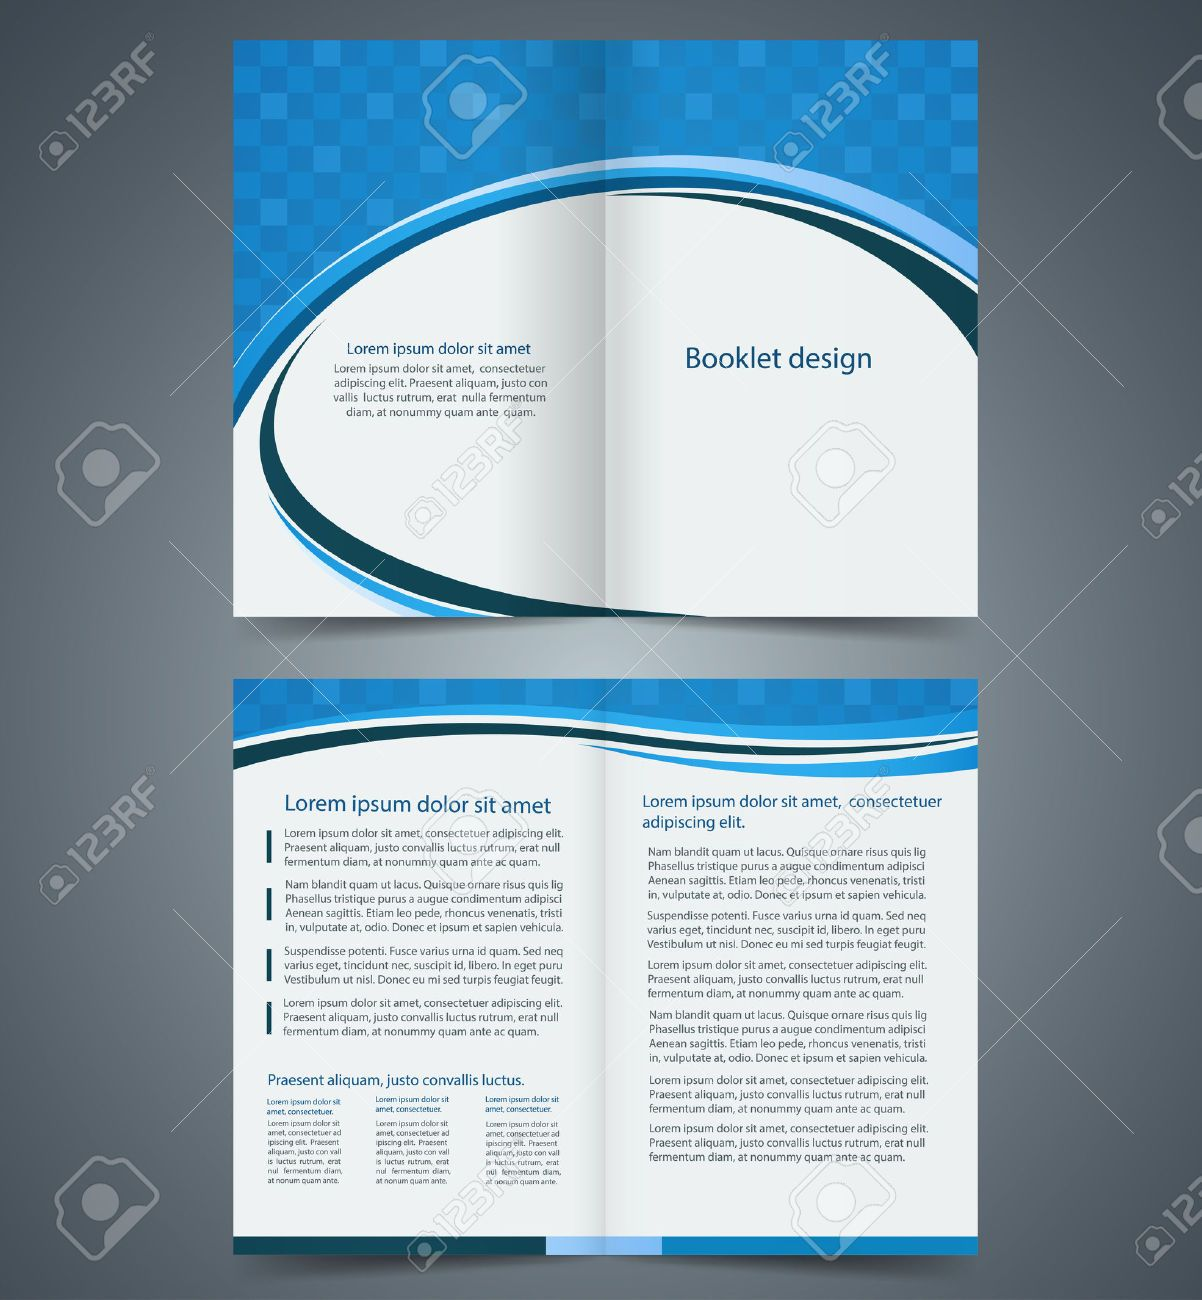 Corporate Booklet Design Google Search Graphic Design - Information brochure template